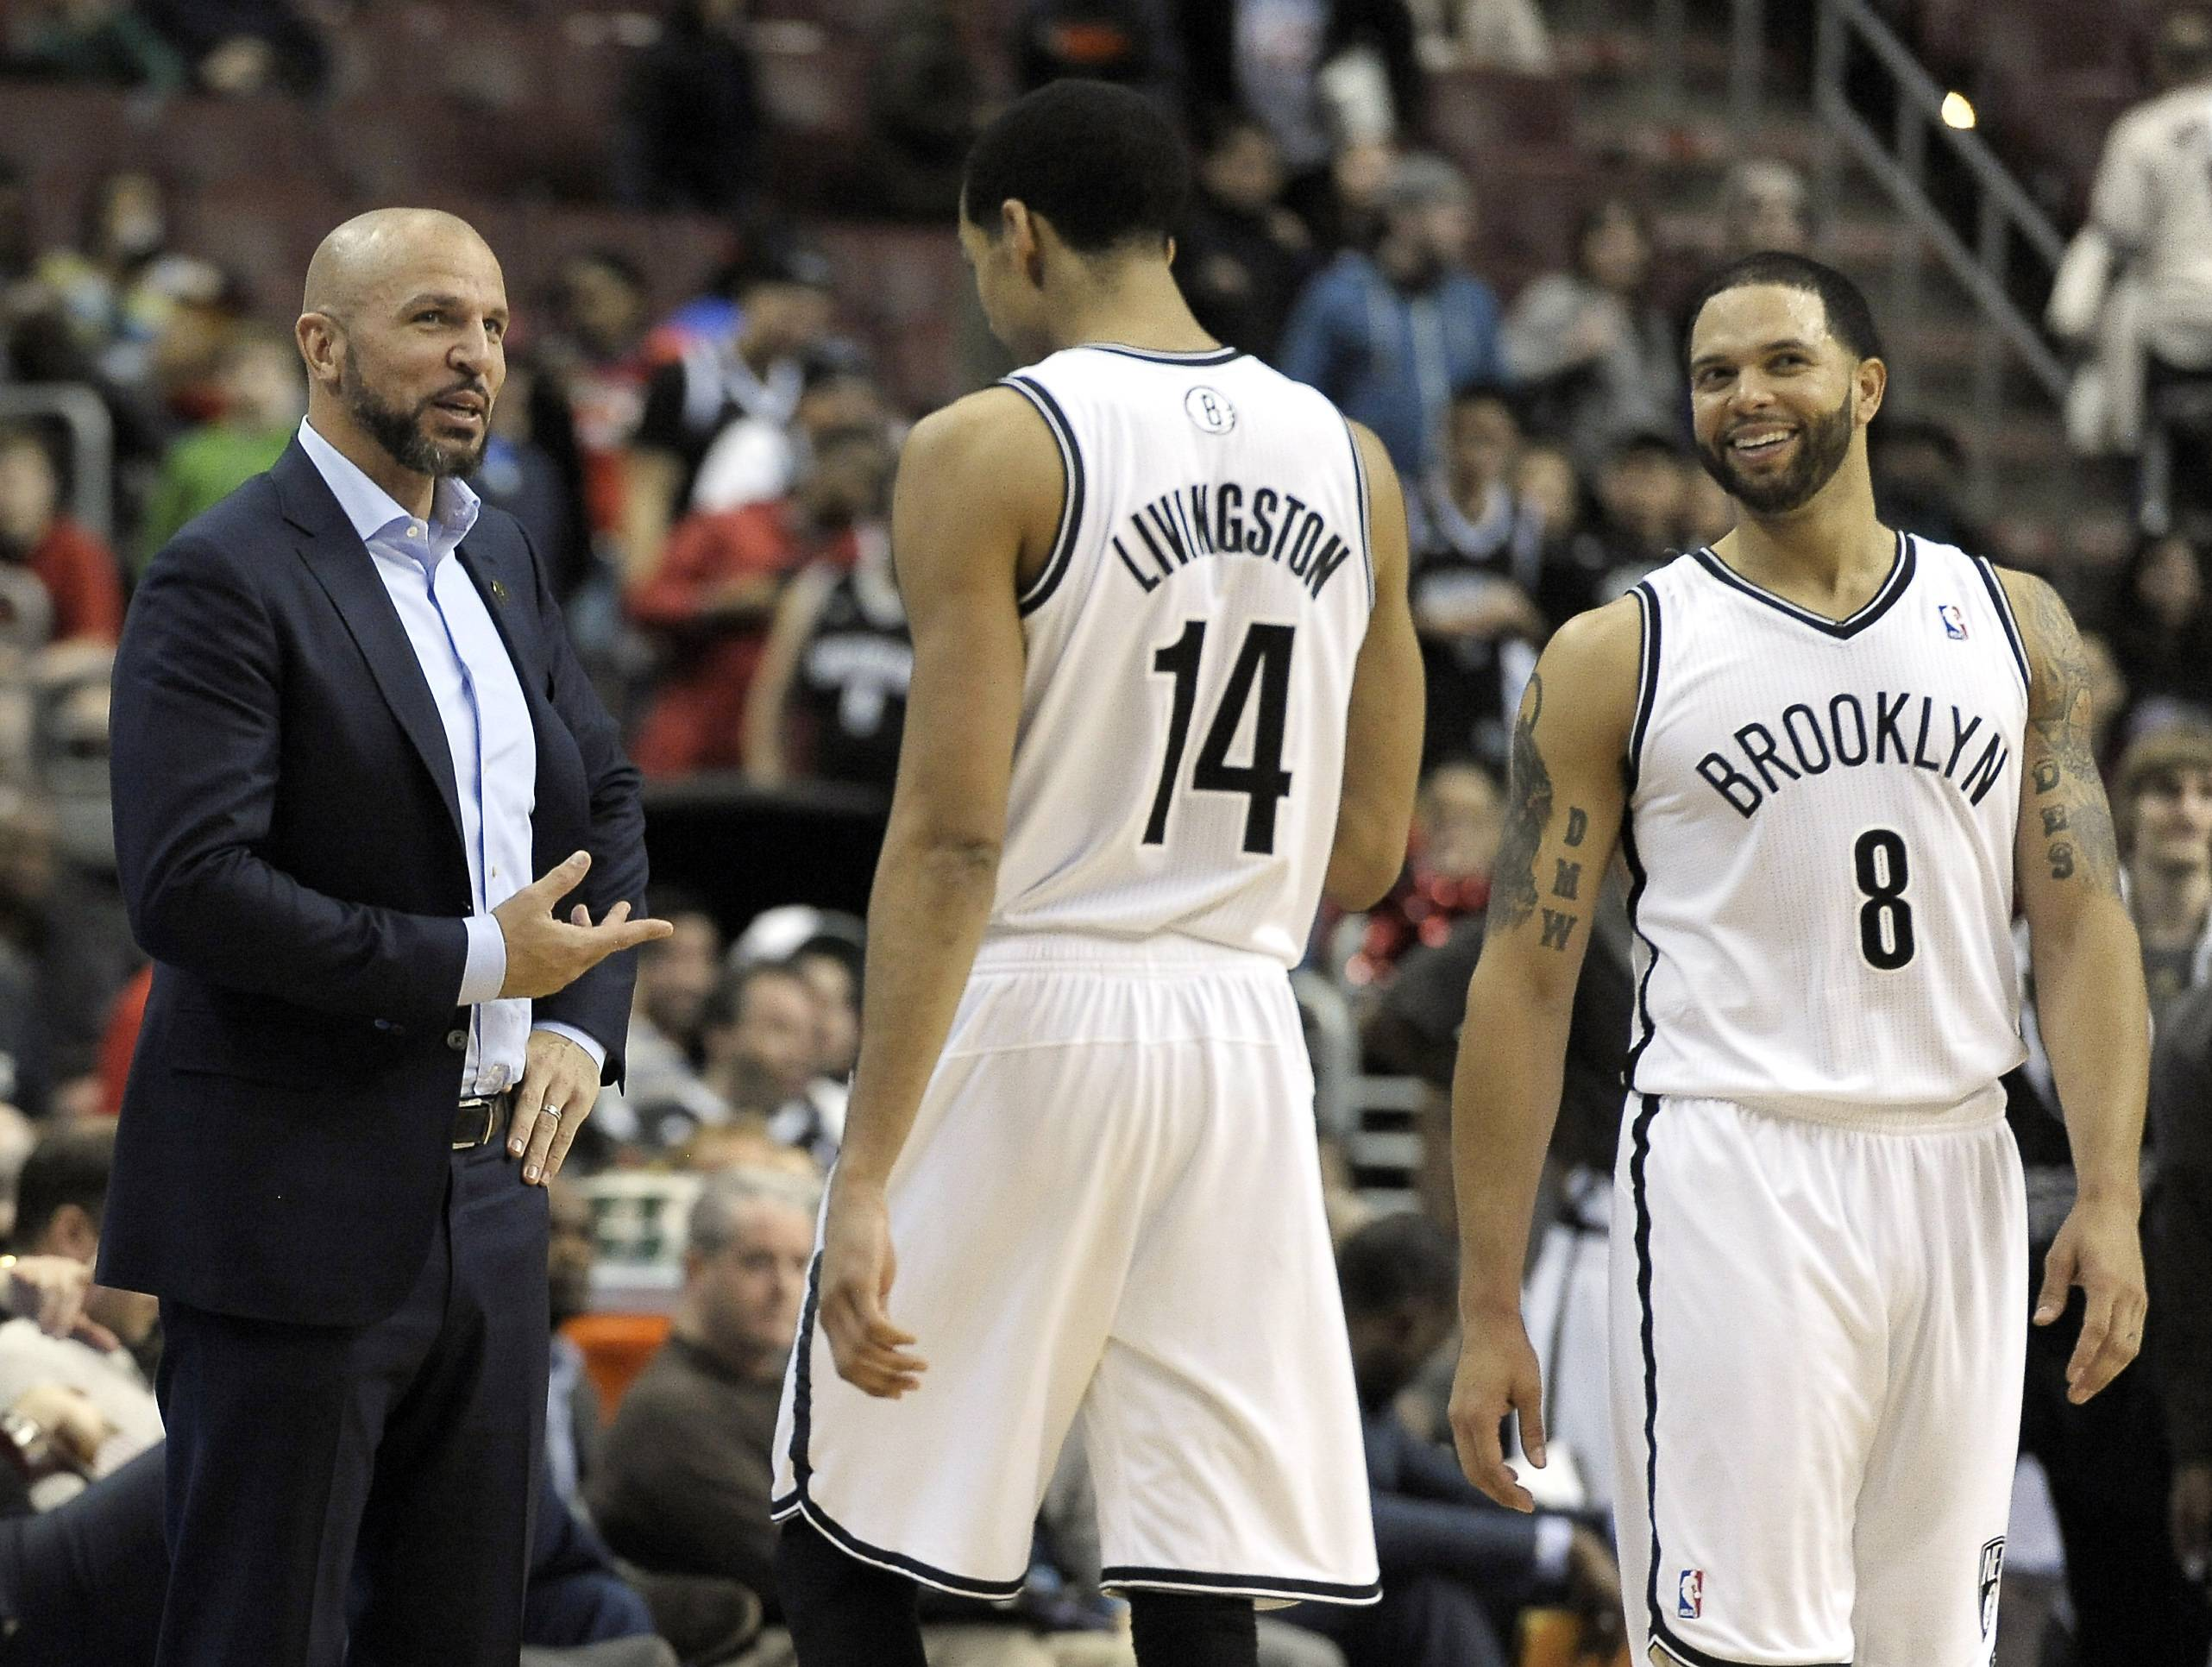 A first-round playoff matchup against the Nets' Shaun Livingston (14) and Deron Williams would be no cakewalk for the Bulls.